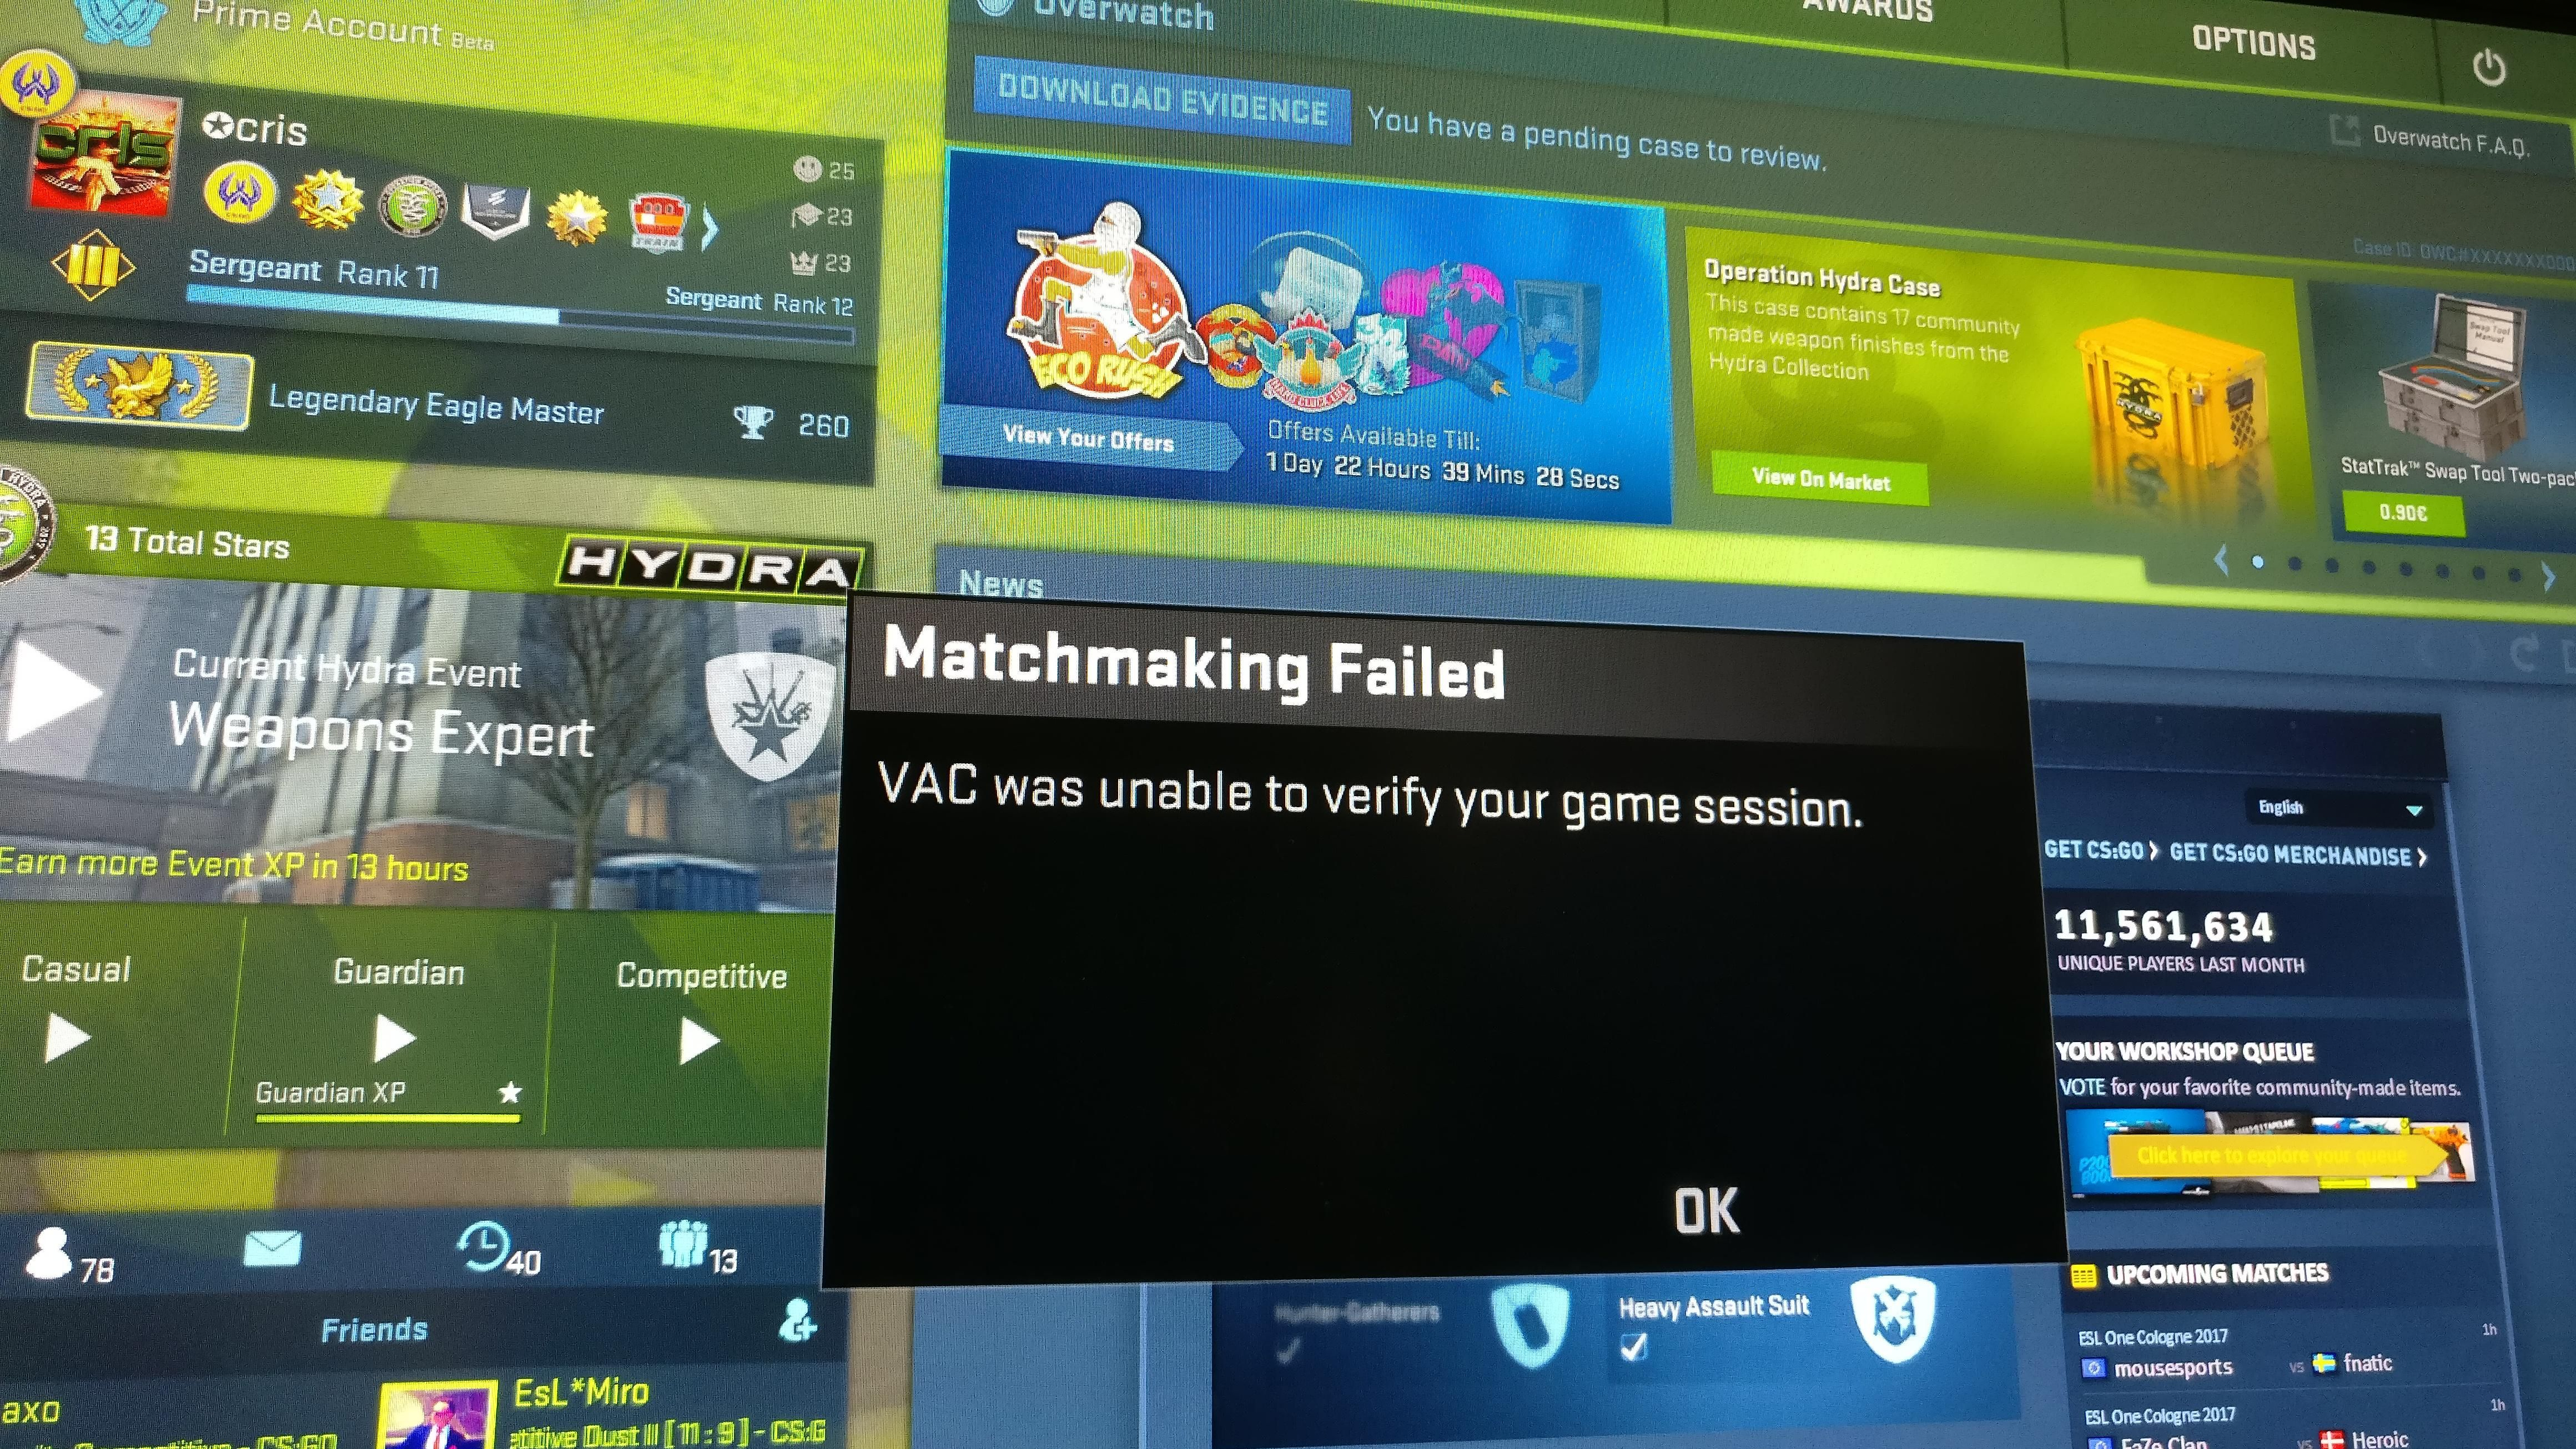 Steam matchmaking failed